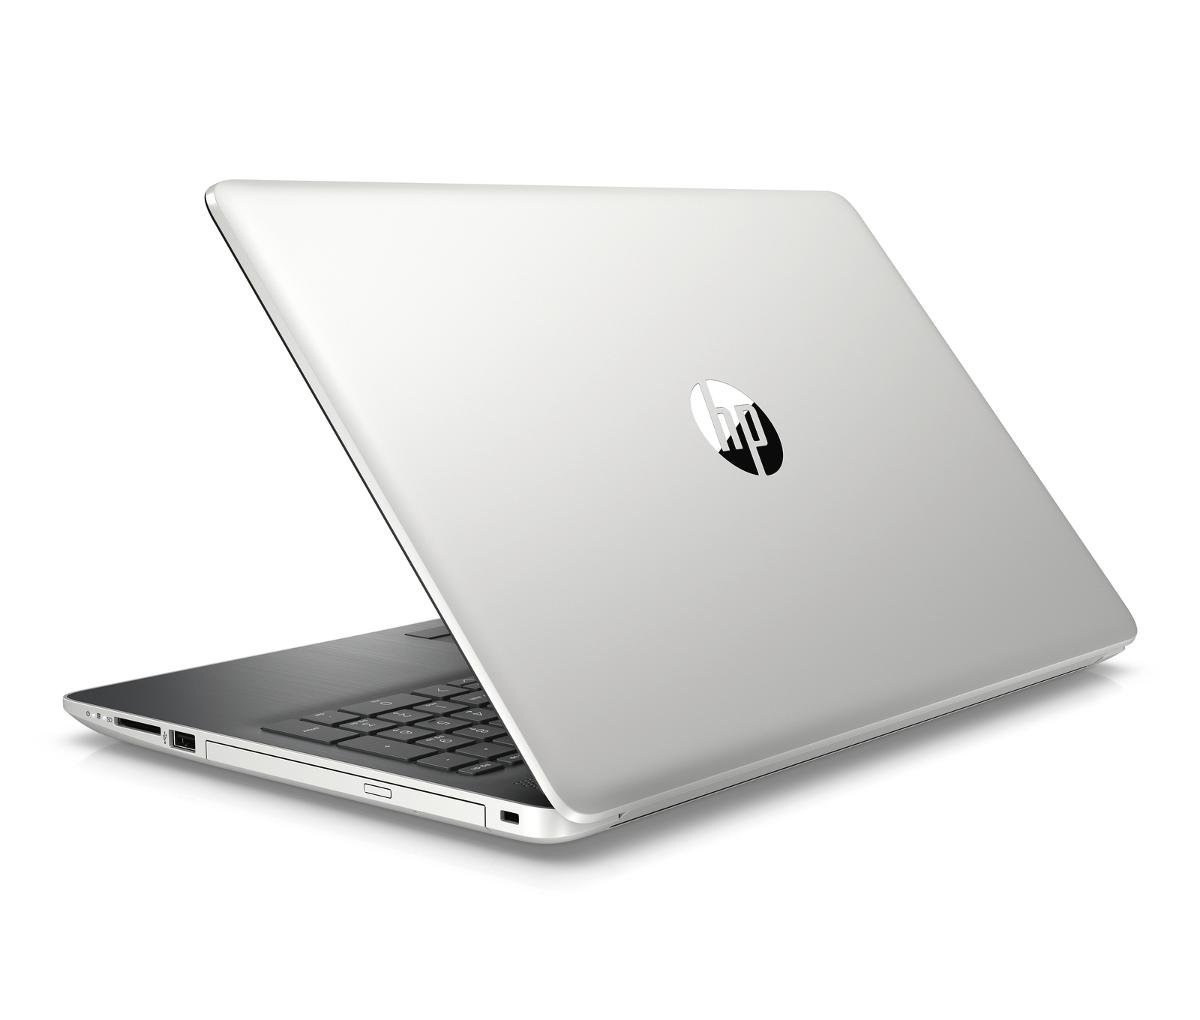 "Laptop HP 15-db1007nw 7DK72EA, Ryzen 3 3200U, Int, 8 GB RAM, 15.6"", 512 GB, Windows 10 Home"